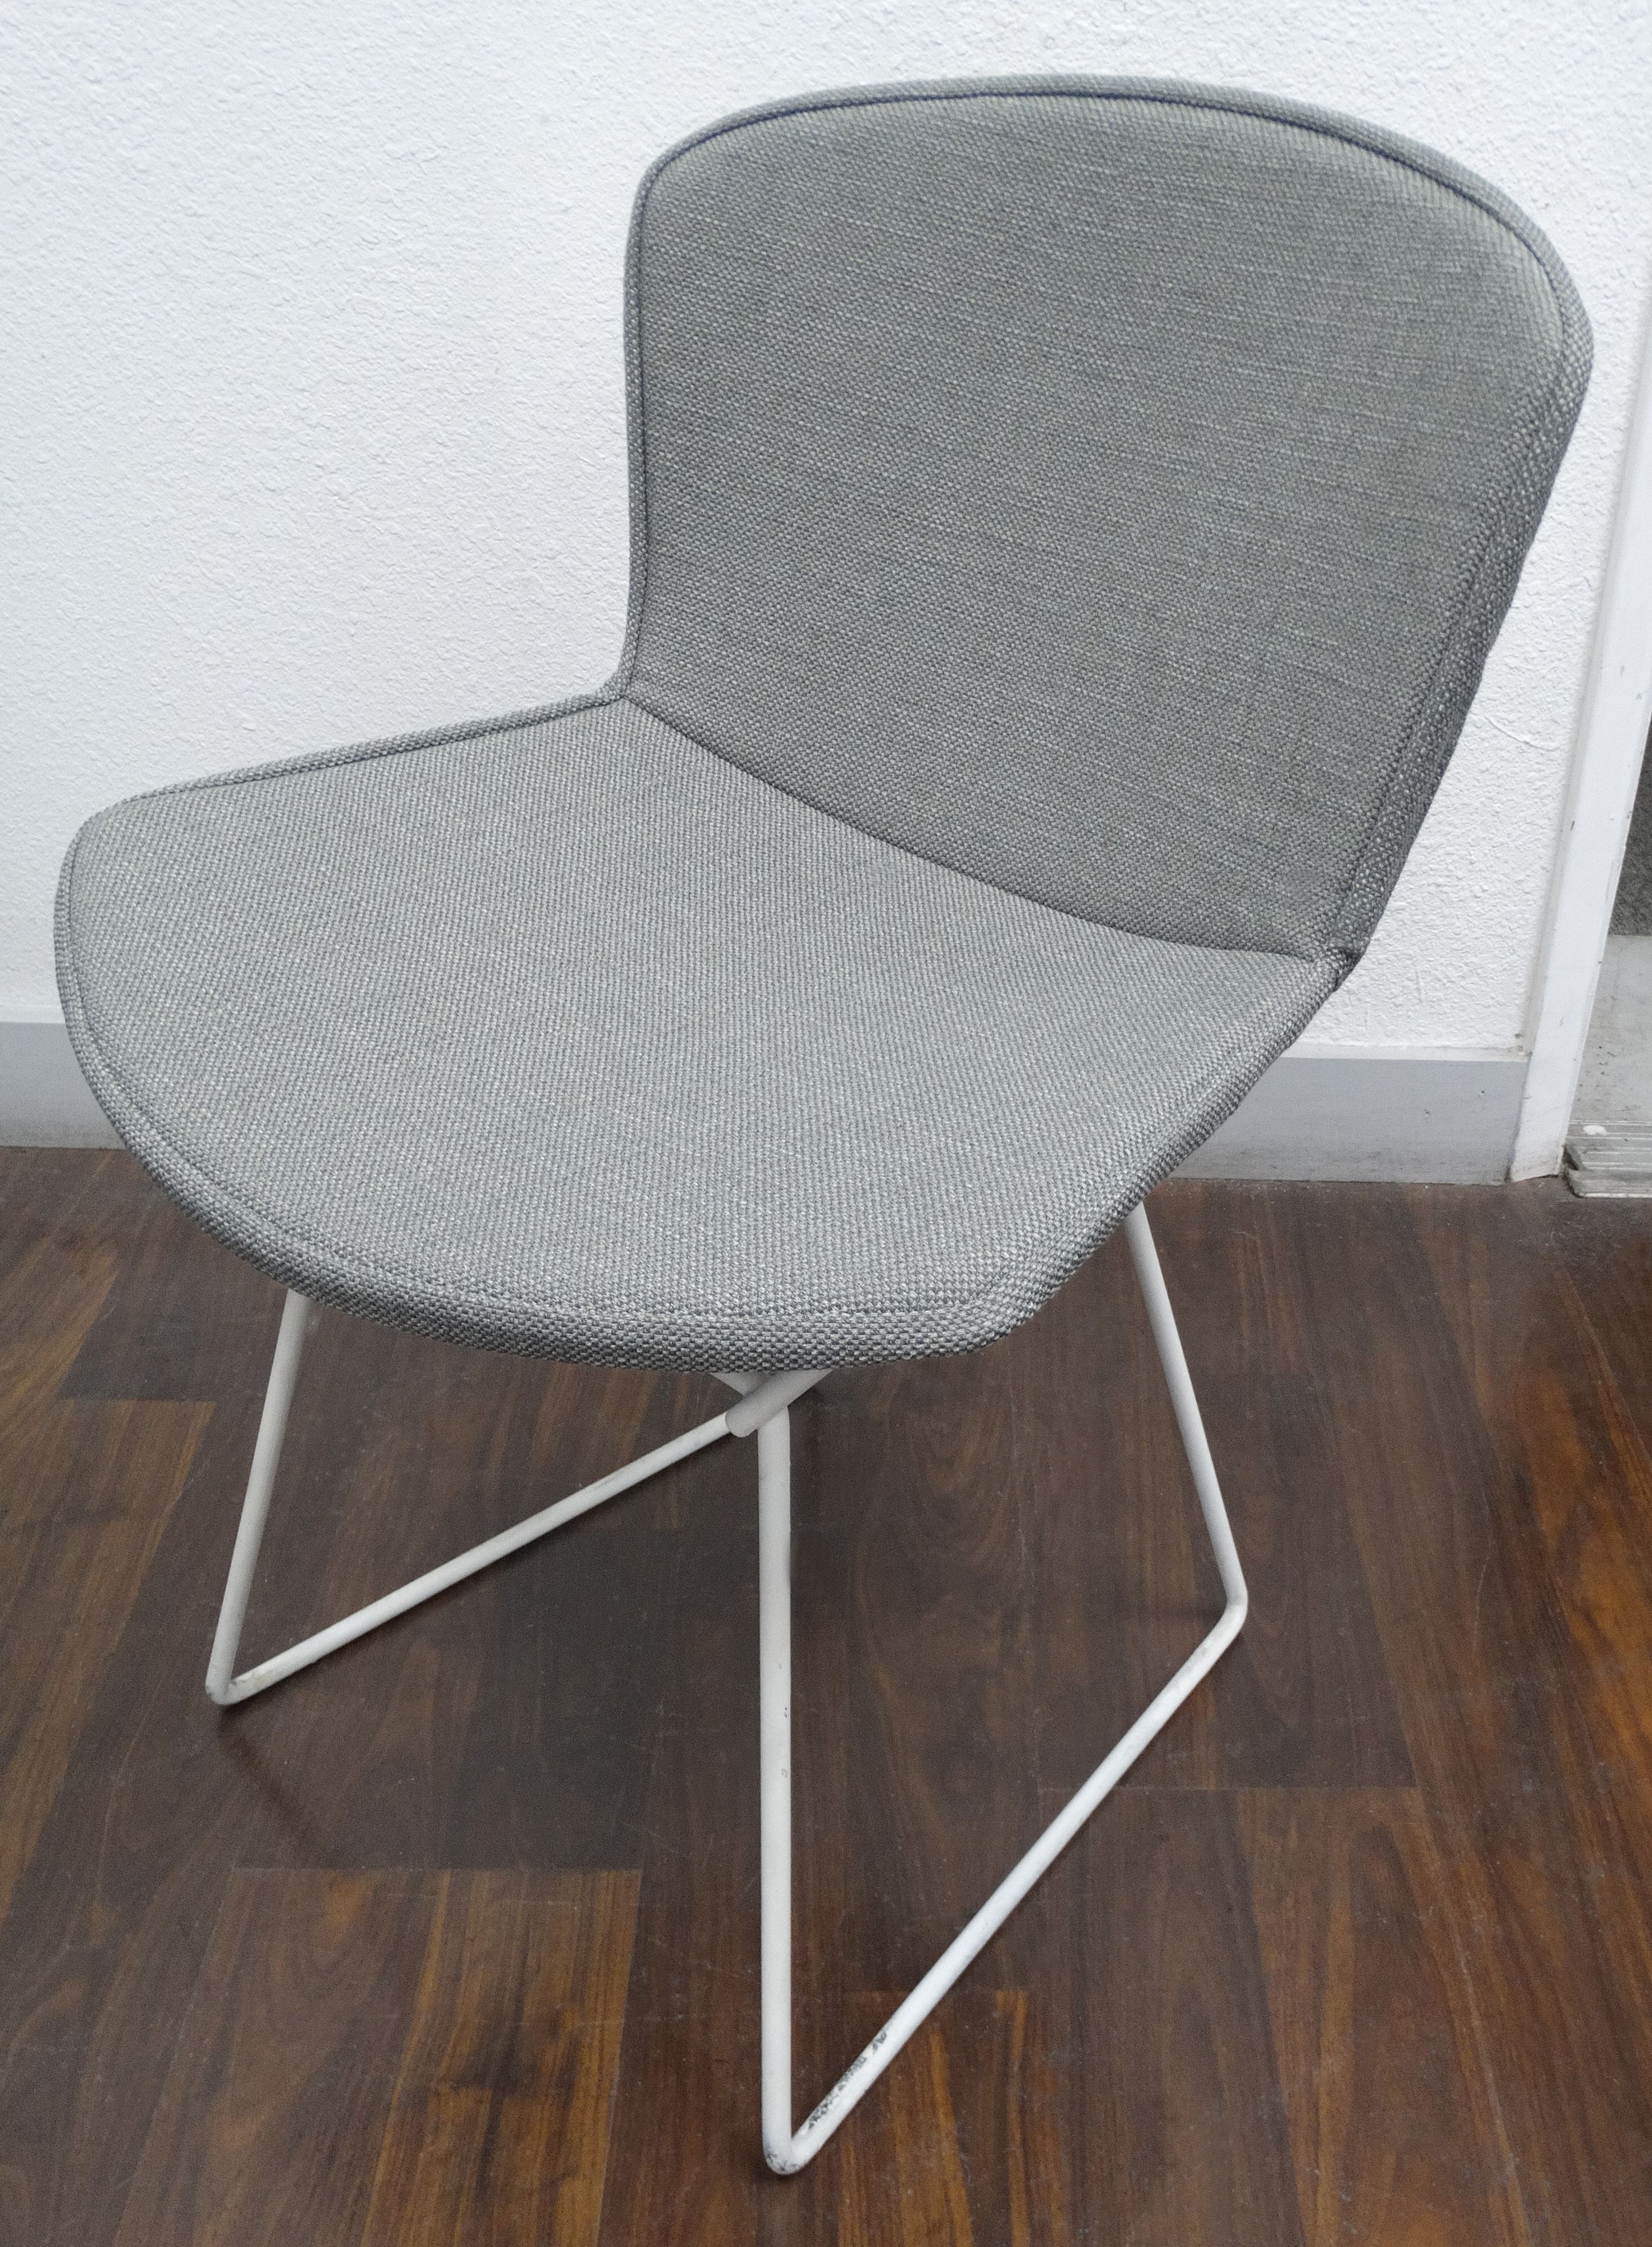 Full cushion for bertoia side chair many colors available eames